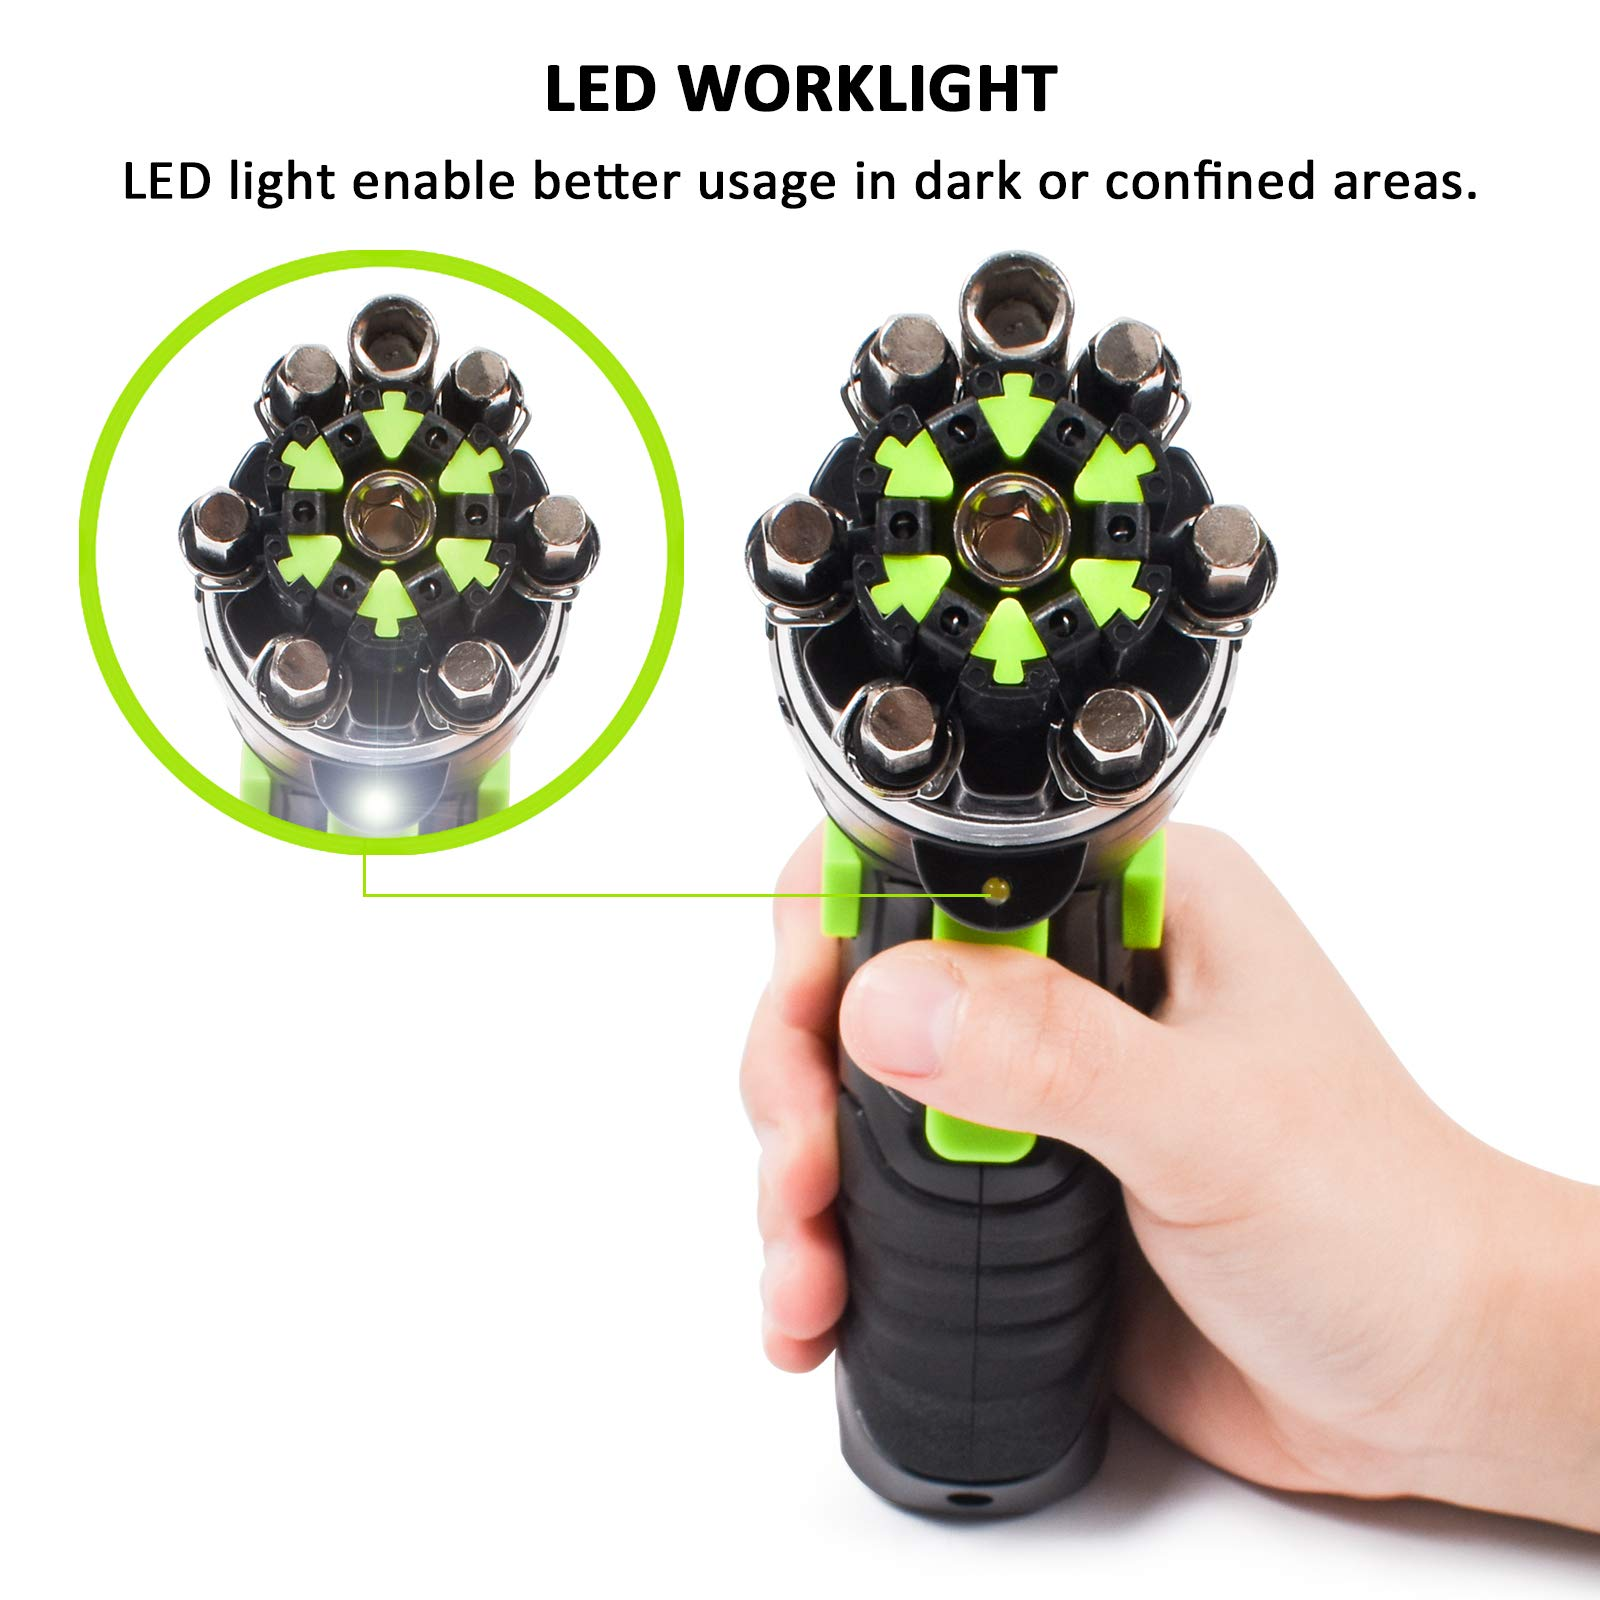 Cordless Screwdriver, HAWKFORCE 3.6V Cordless Rechargeable Screwdriver - Flexible Pivoting Head - Adjustable 2 Position Handle - Front LED Light Power Screwdriver with Bubble Level